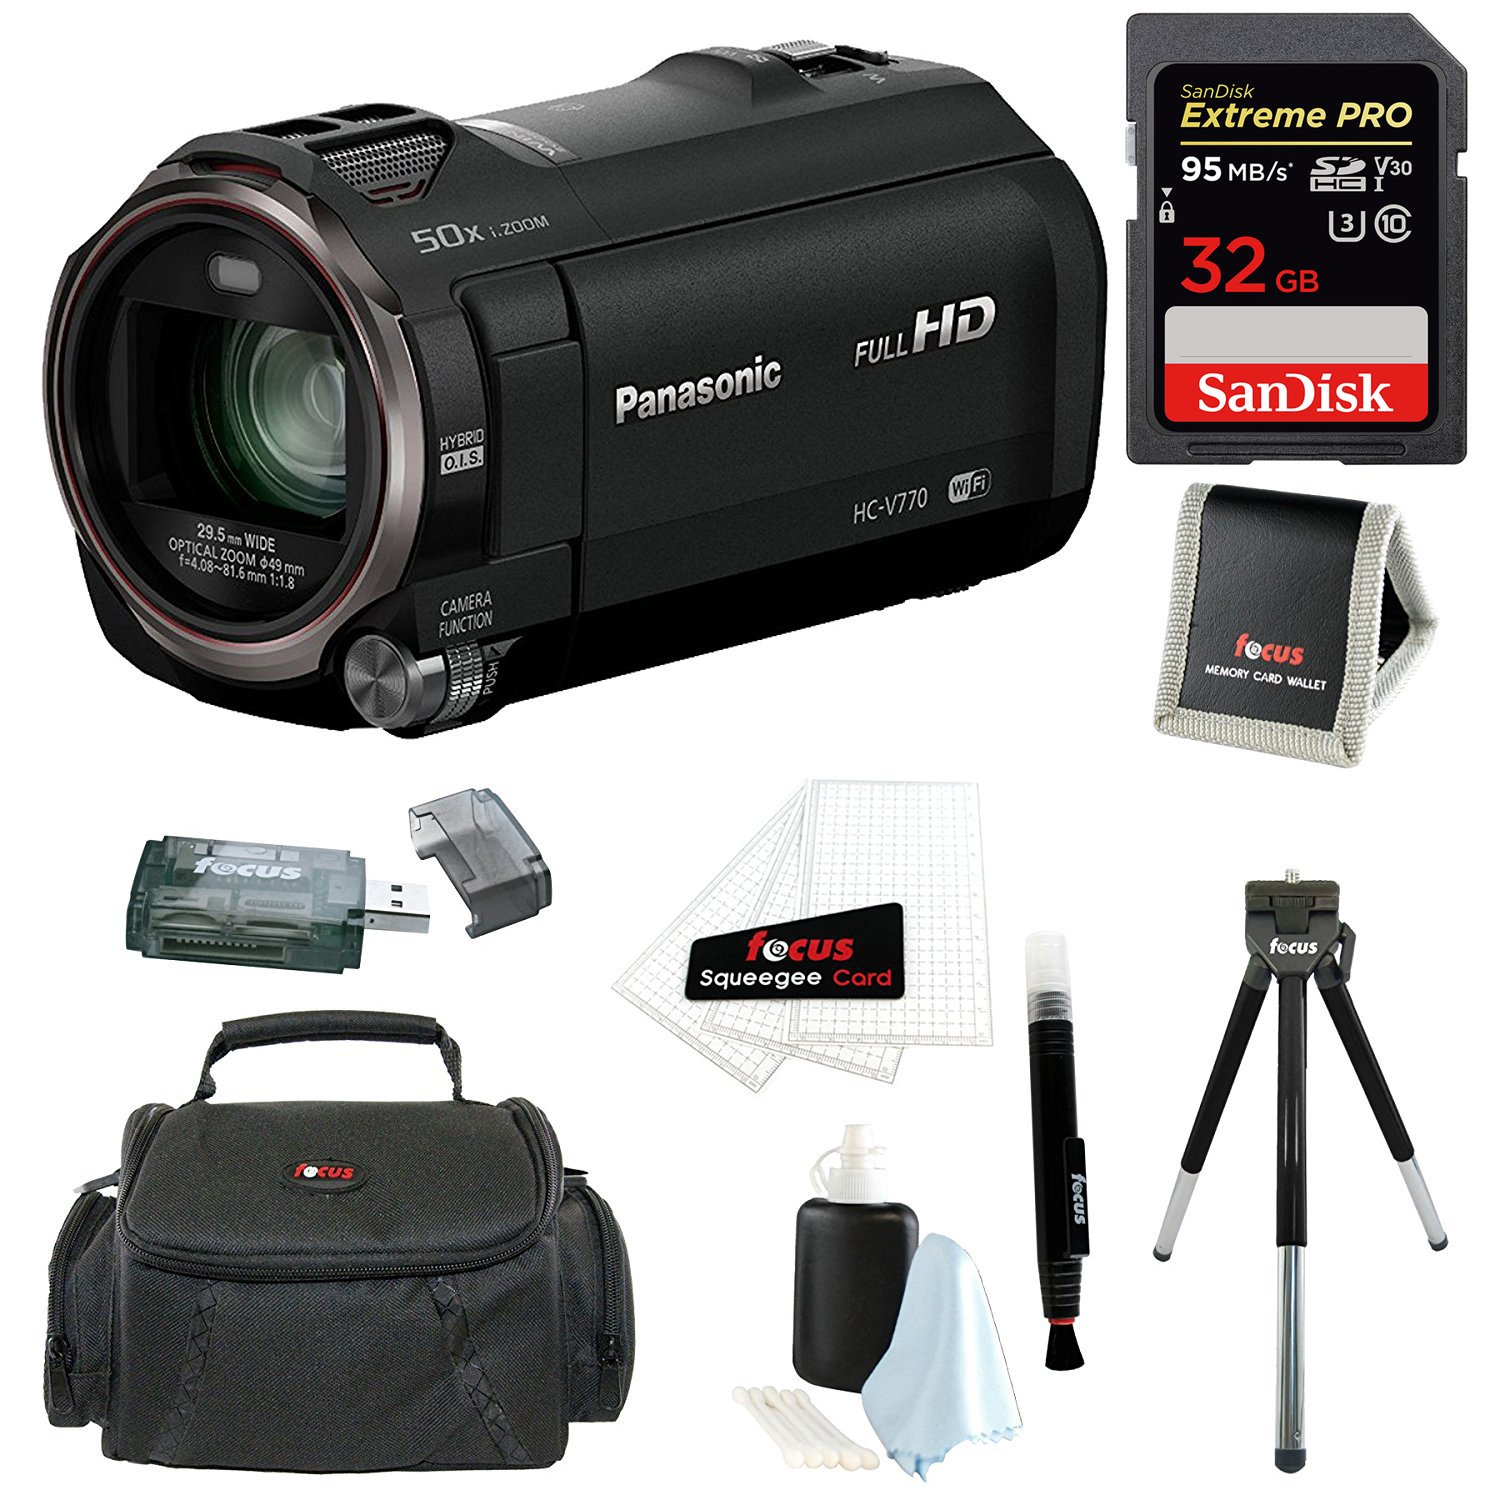 Panasonic HC-V770 HD Camcorder with Wireless Smartphone Twin Video Capture wi... by Panasonic